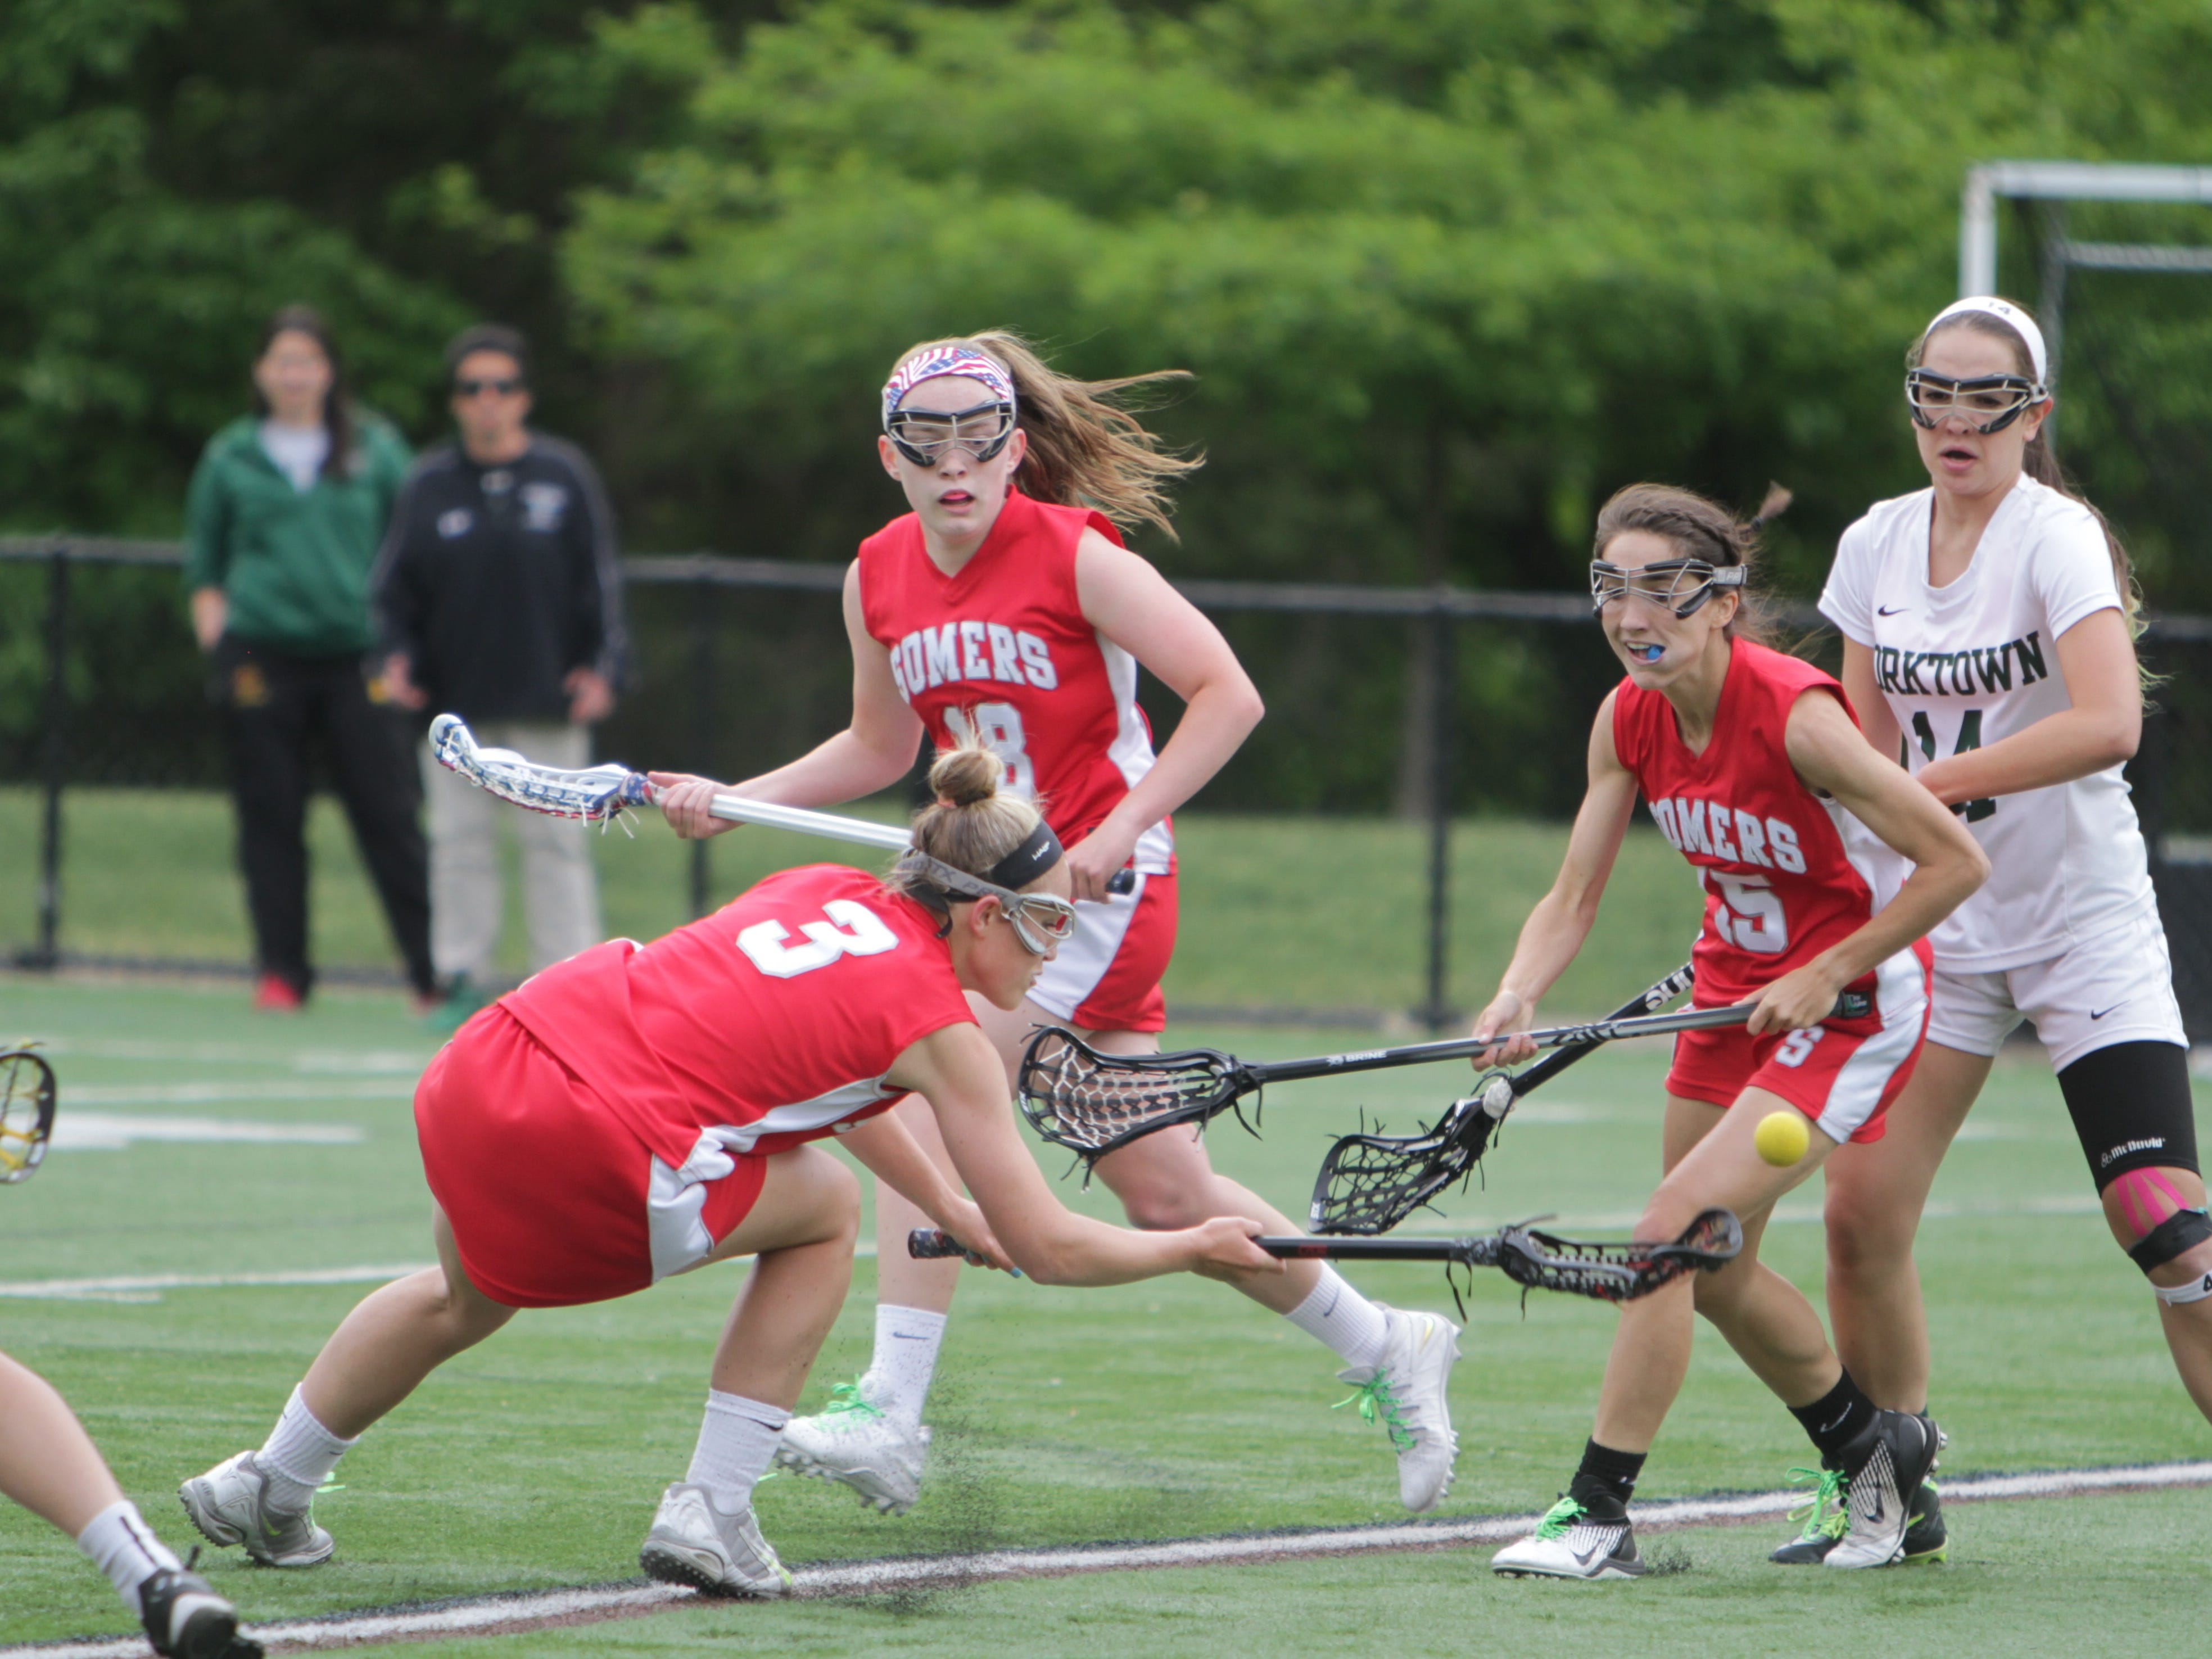 Somers' Gabby Rosenzweig goes for a ground ball, with teammates Christine Olert (18) and Sydney Ericson (15) looking on during the Class B final at Torne Valley Stadium. Somers won 10-9.